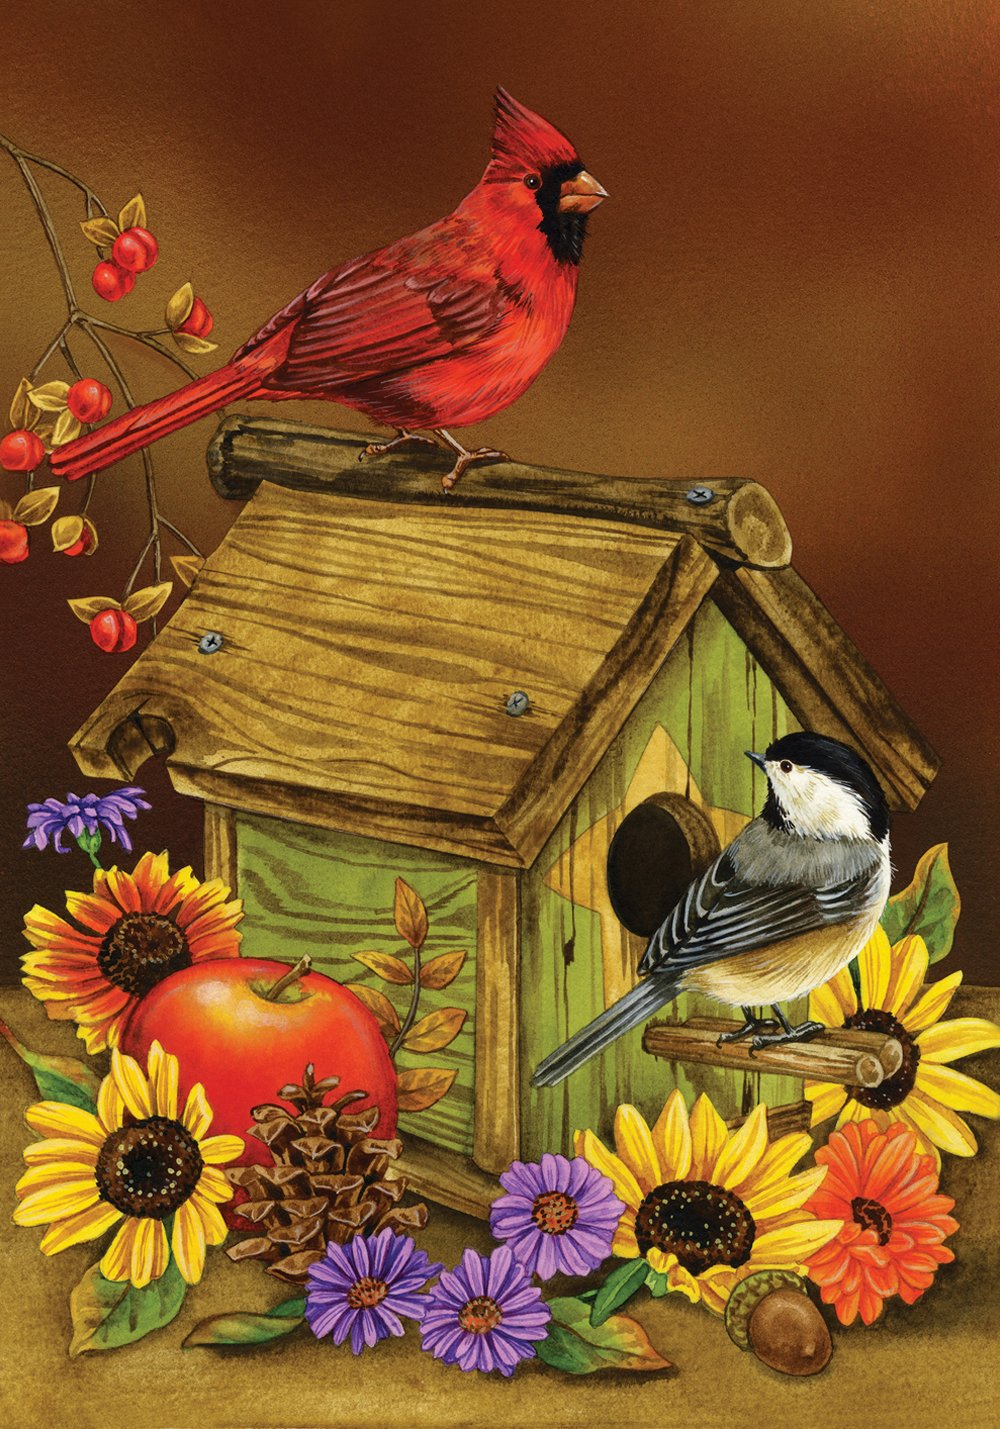 Toland Home Garden Autumn Melody 28 x 40 Inch Decorative Fall Cardinal Bird Sunflower House Flag